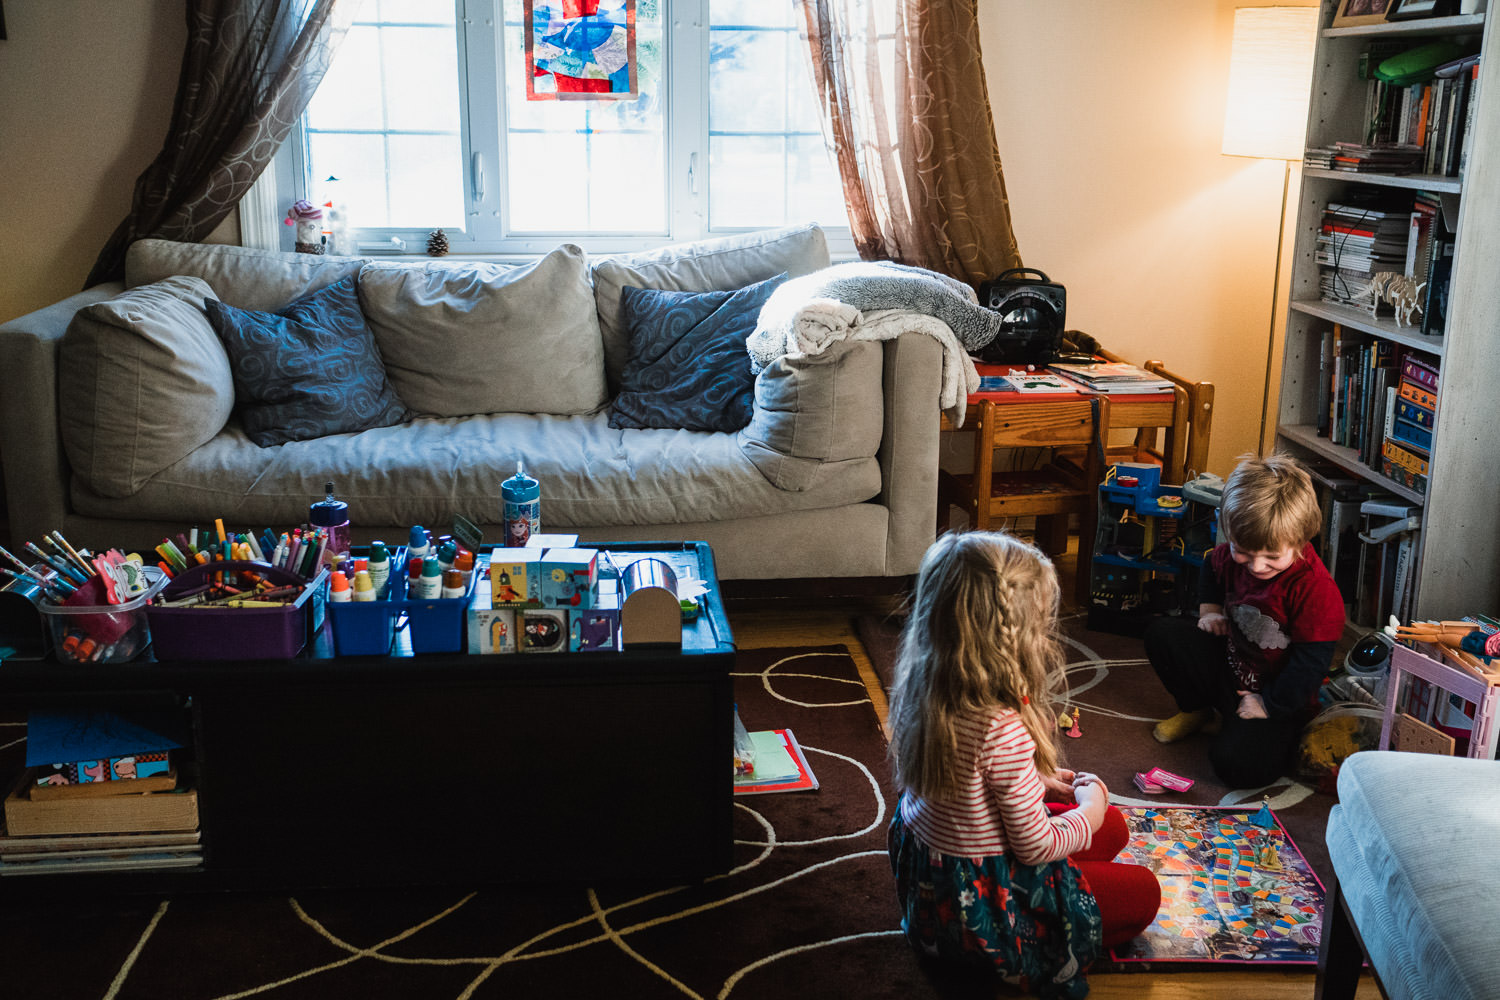 Two children play board games in their living room.